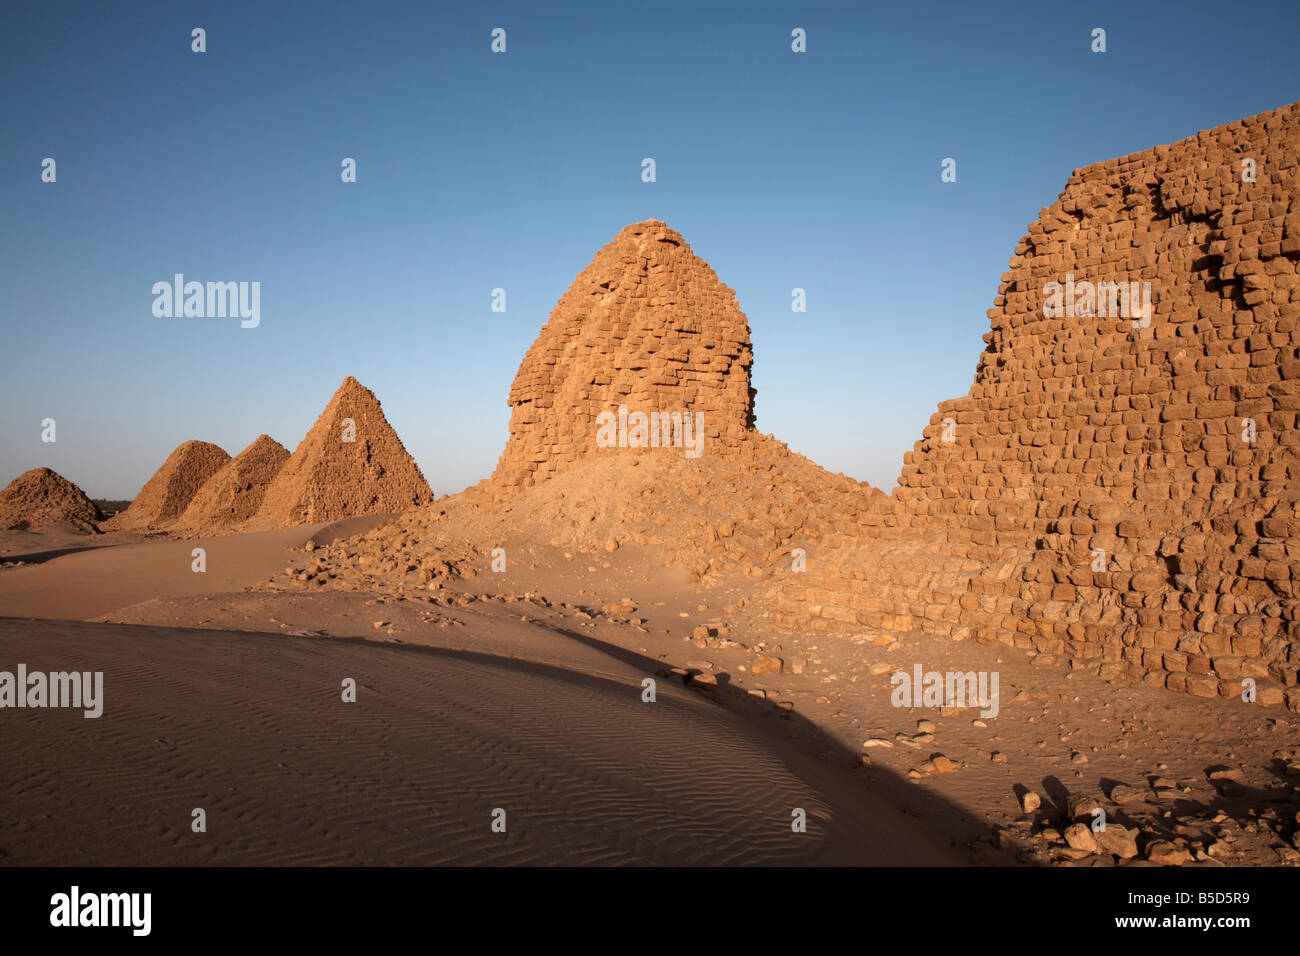 The royal cemetery of Nuri, burial place of King Taharqa, ancient ruler of the Kingdom of Kush, Karima, Sudan, Africa Stock Photo